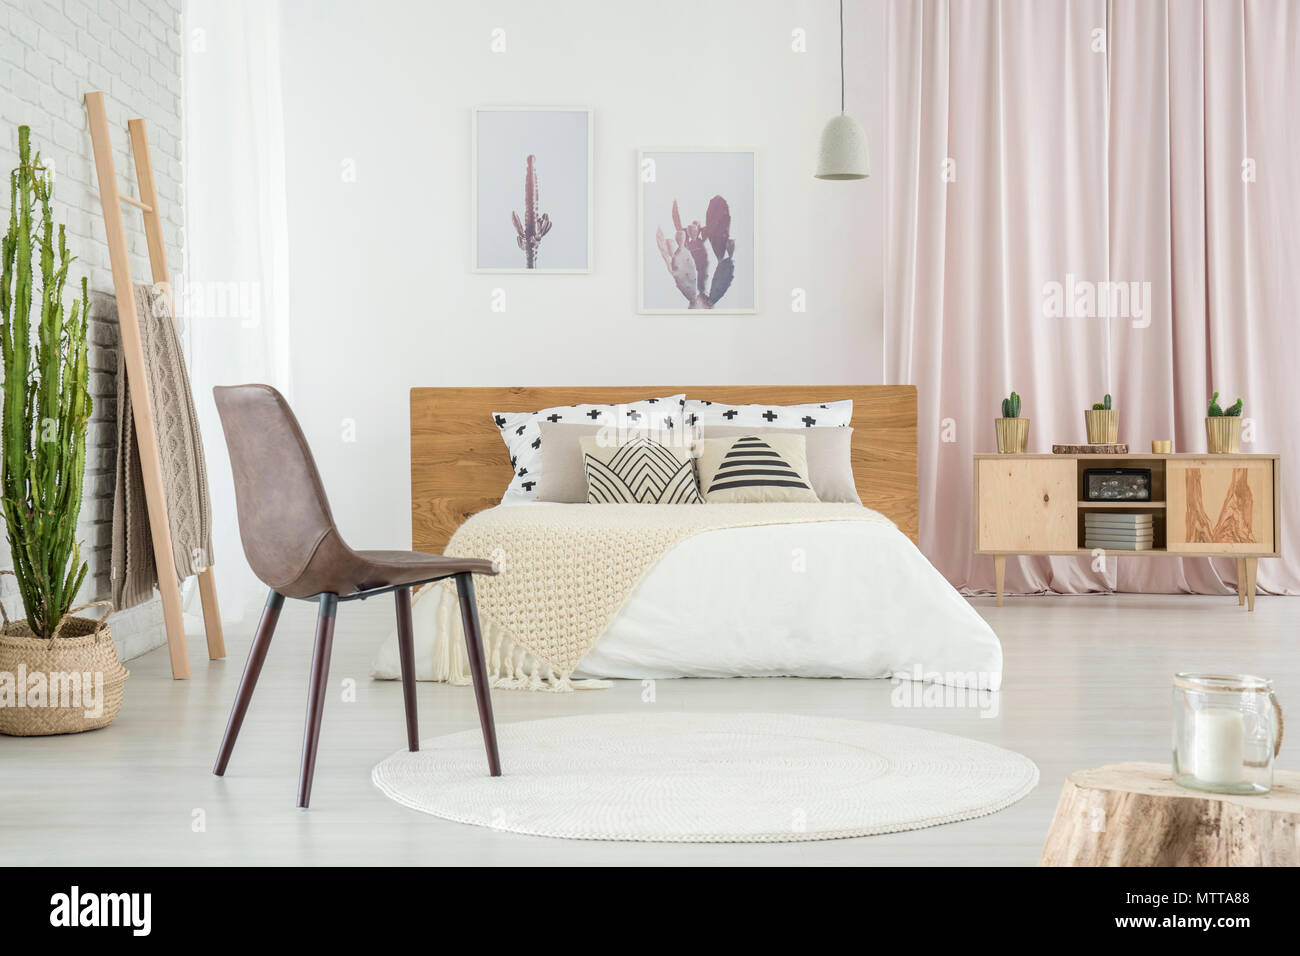 White round carpet on the floor in room with bed, patterned pillows ...